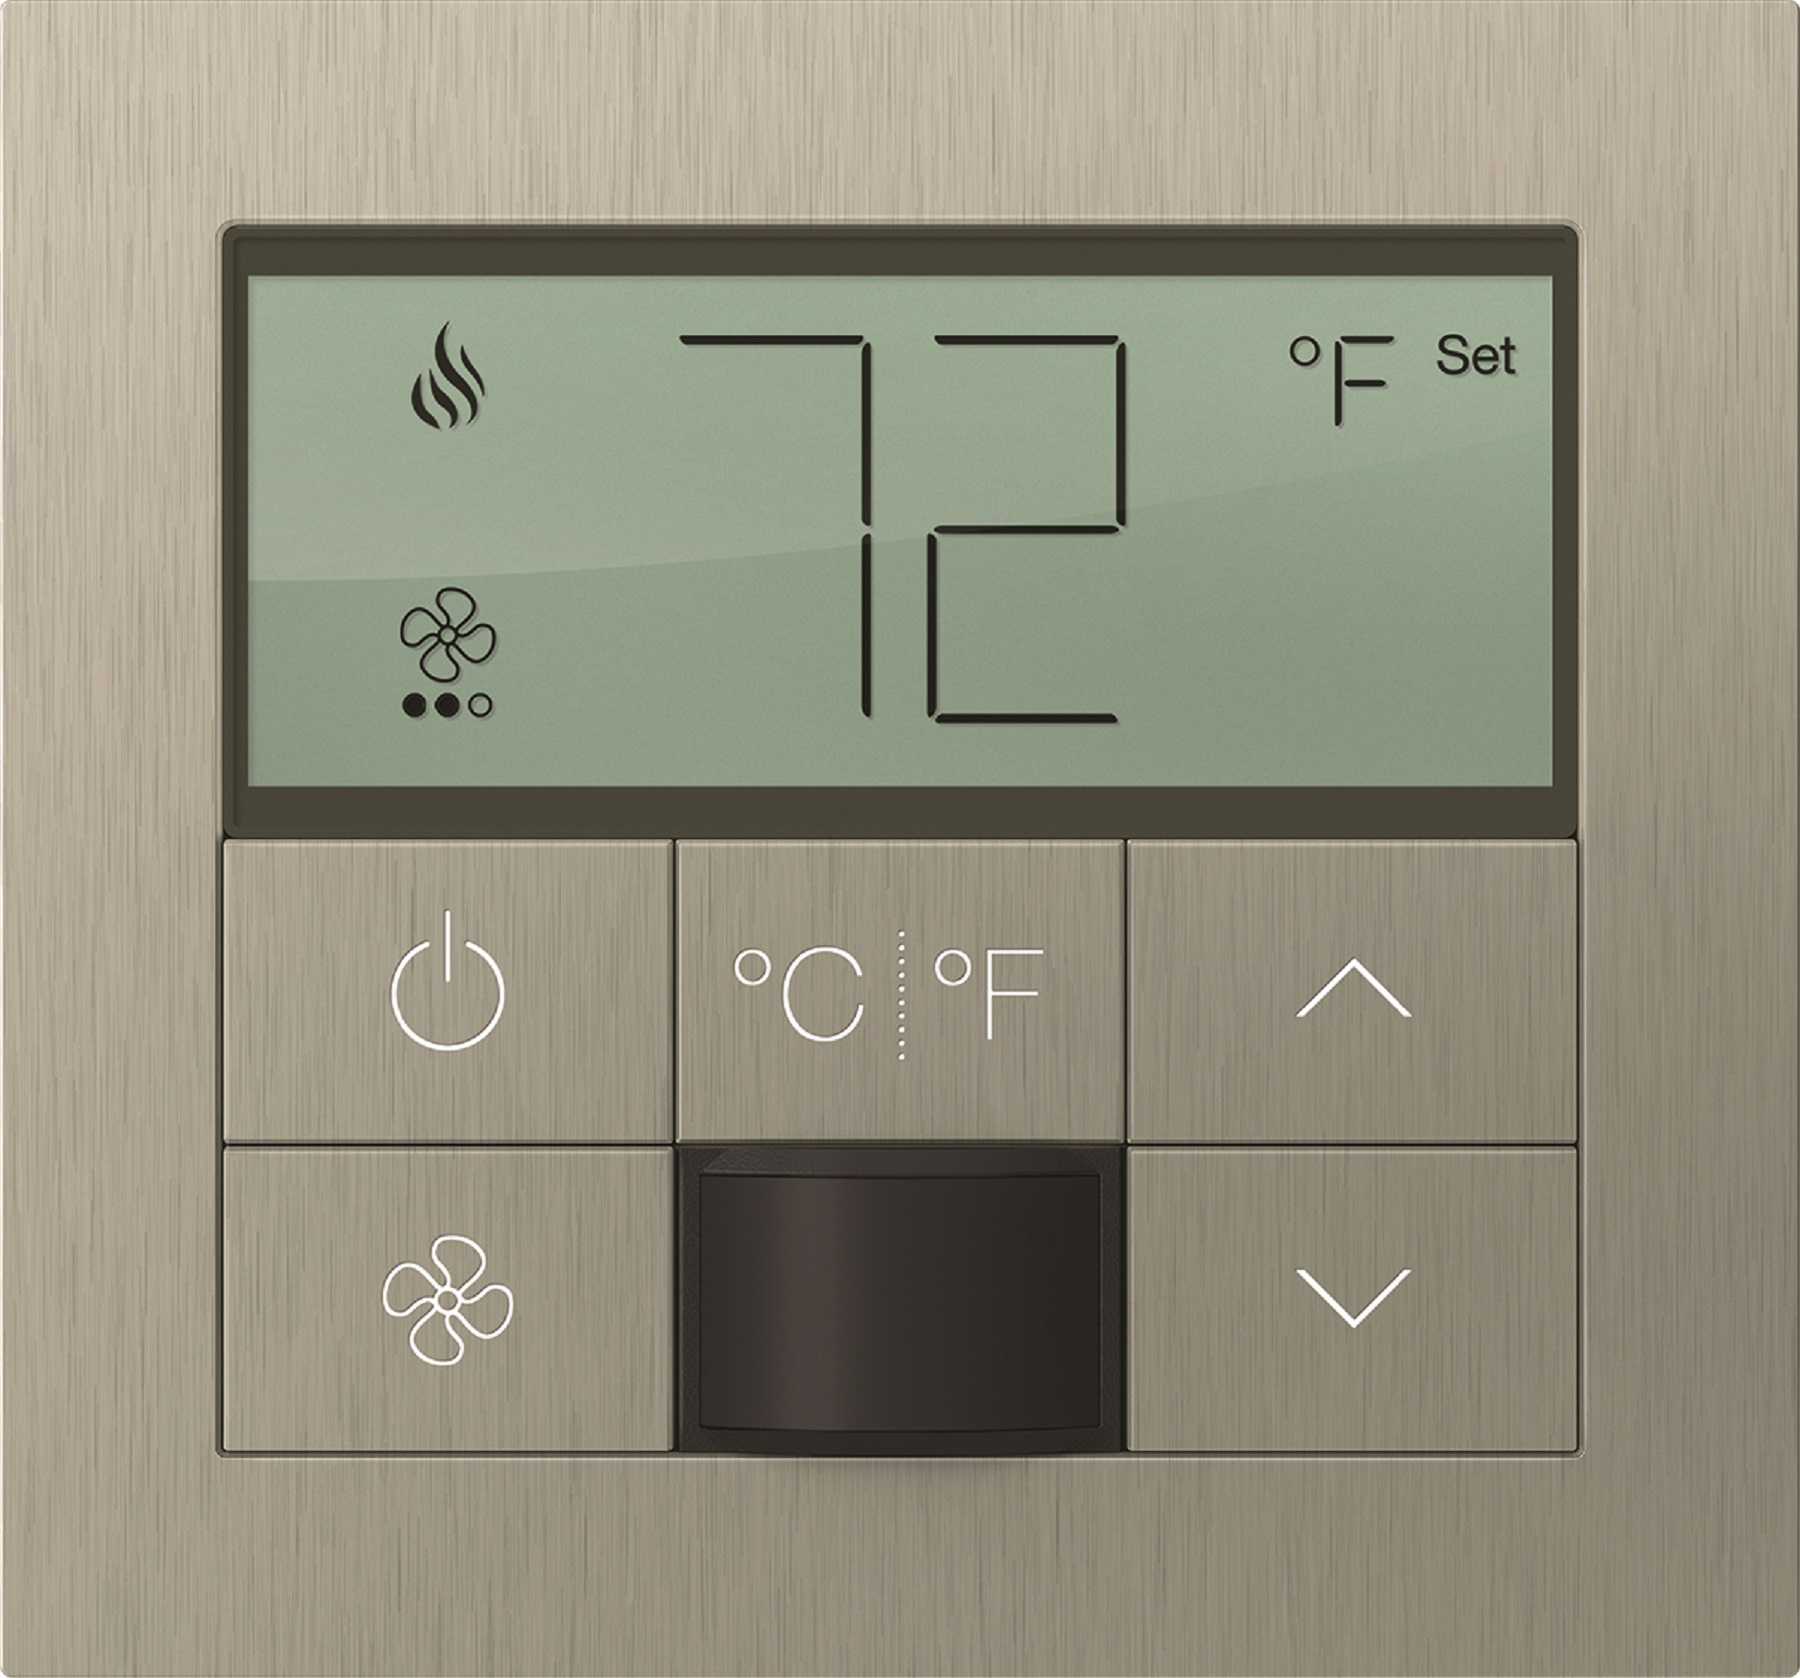 lutron-thermostat-palladiom-nickel-satine-1800x1678pixels